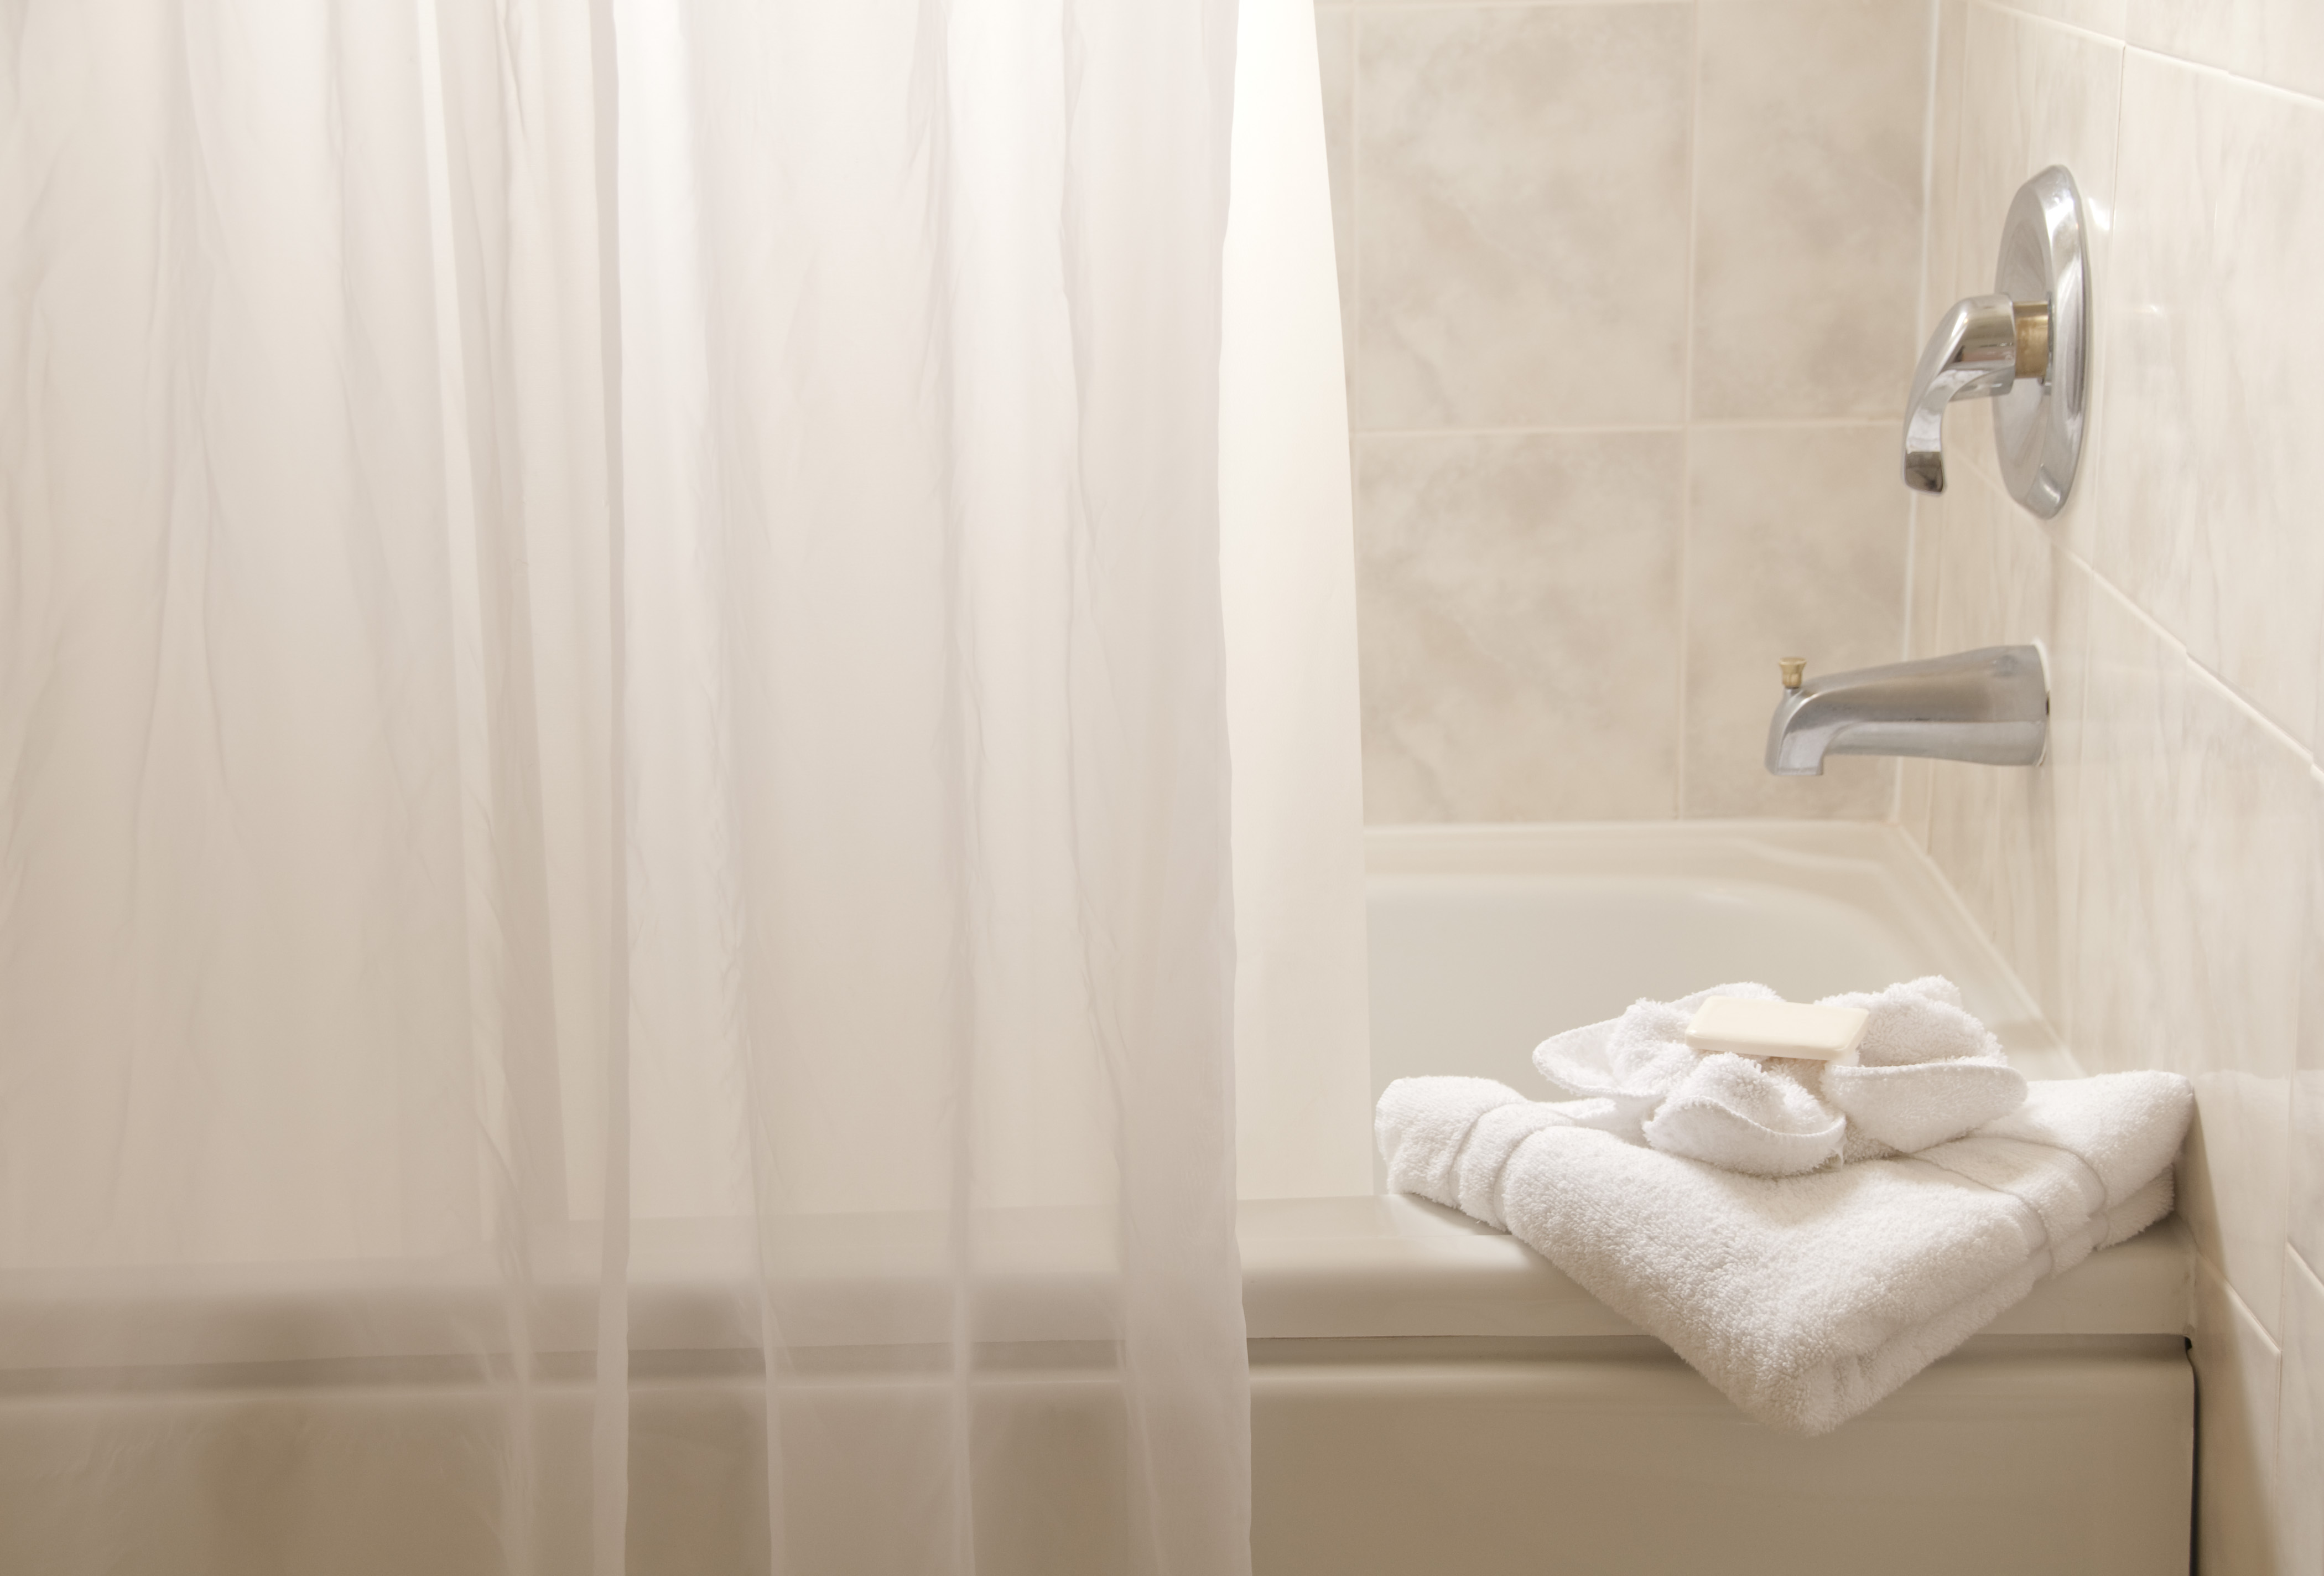 108 Inch Wide Shower Curtain How To Pick The Proper Width For A Shower Curtain Home Guides